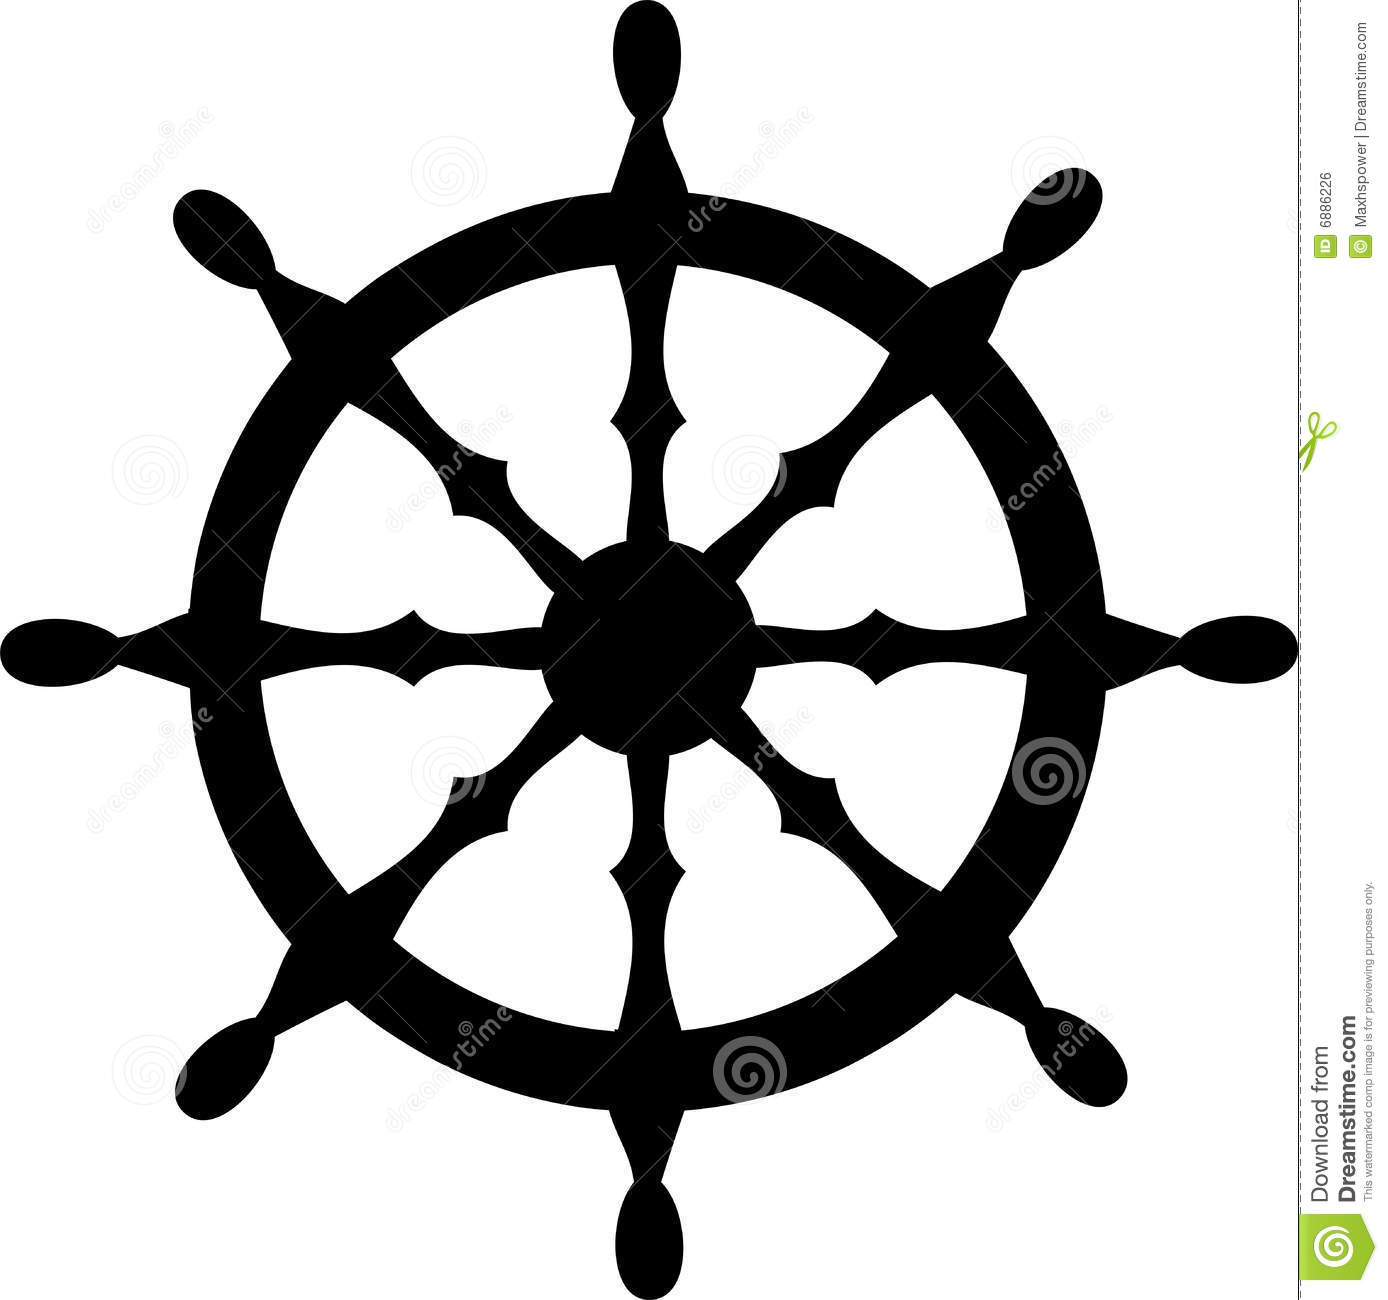 clipart ship steering wheel - photo #14